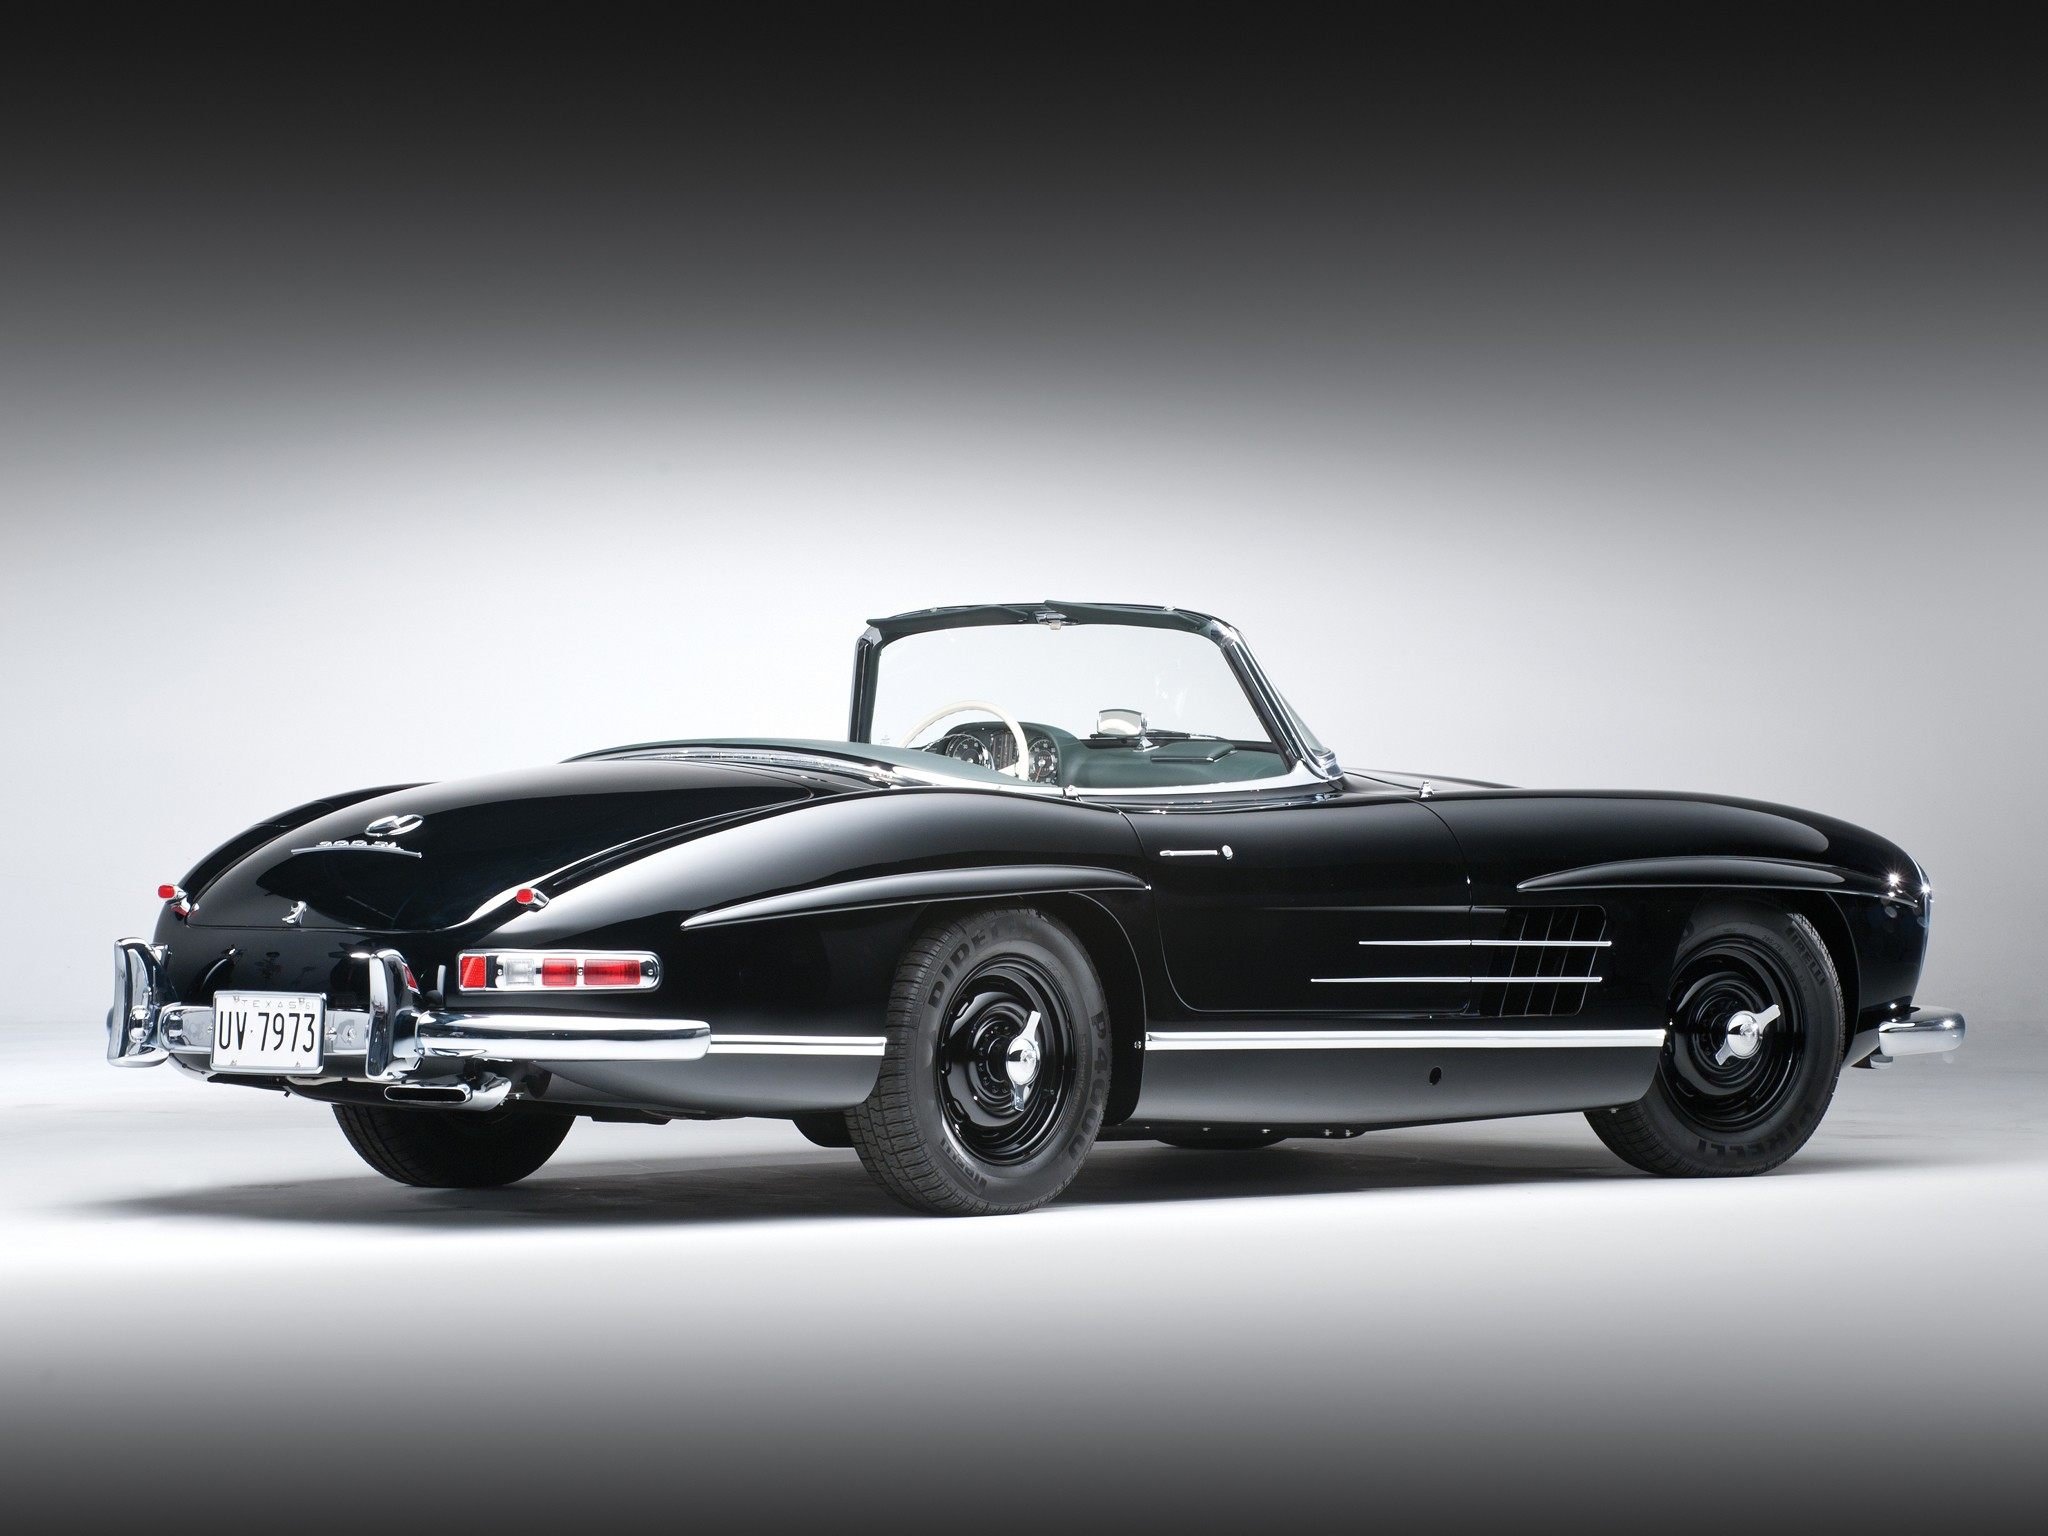 mercedes benz 300 sl roadster hardtop w198 specs 1958 1959 1960 1961 1962 1963. Black Bedroom Furniture Sets. Home Design Ideas